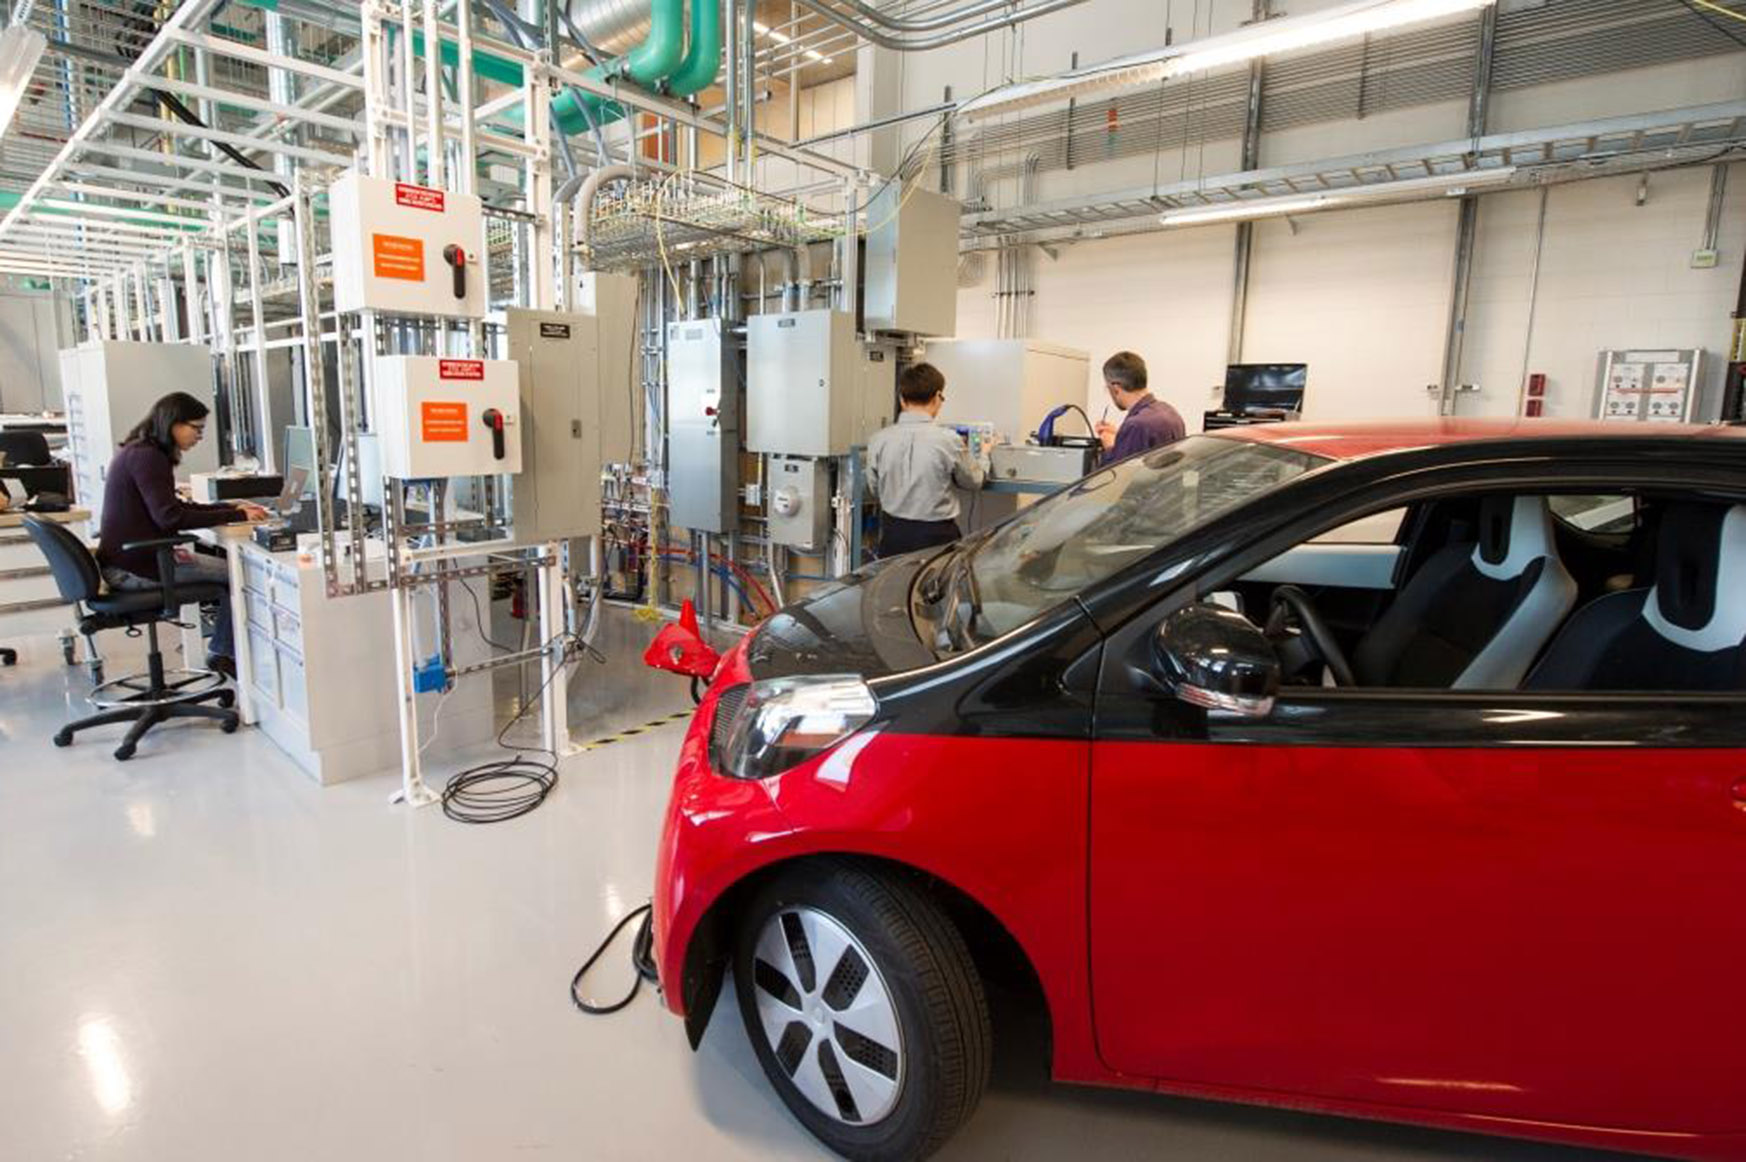 Photo of electric vehicle in laboratory setting.